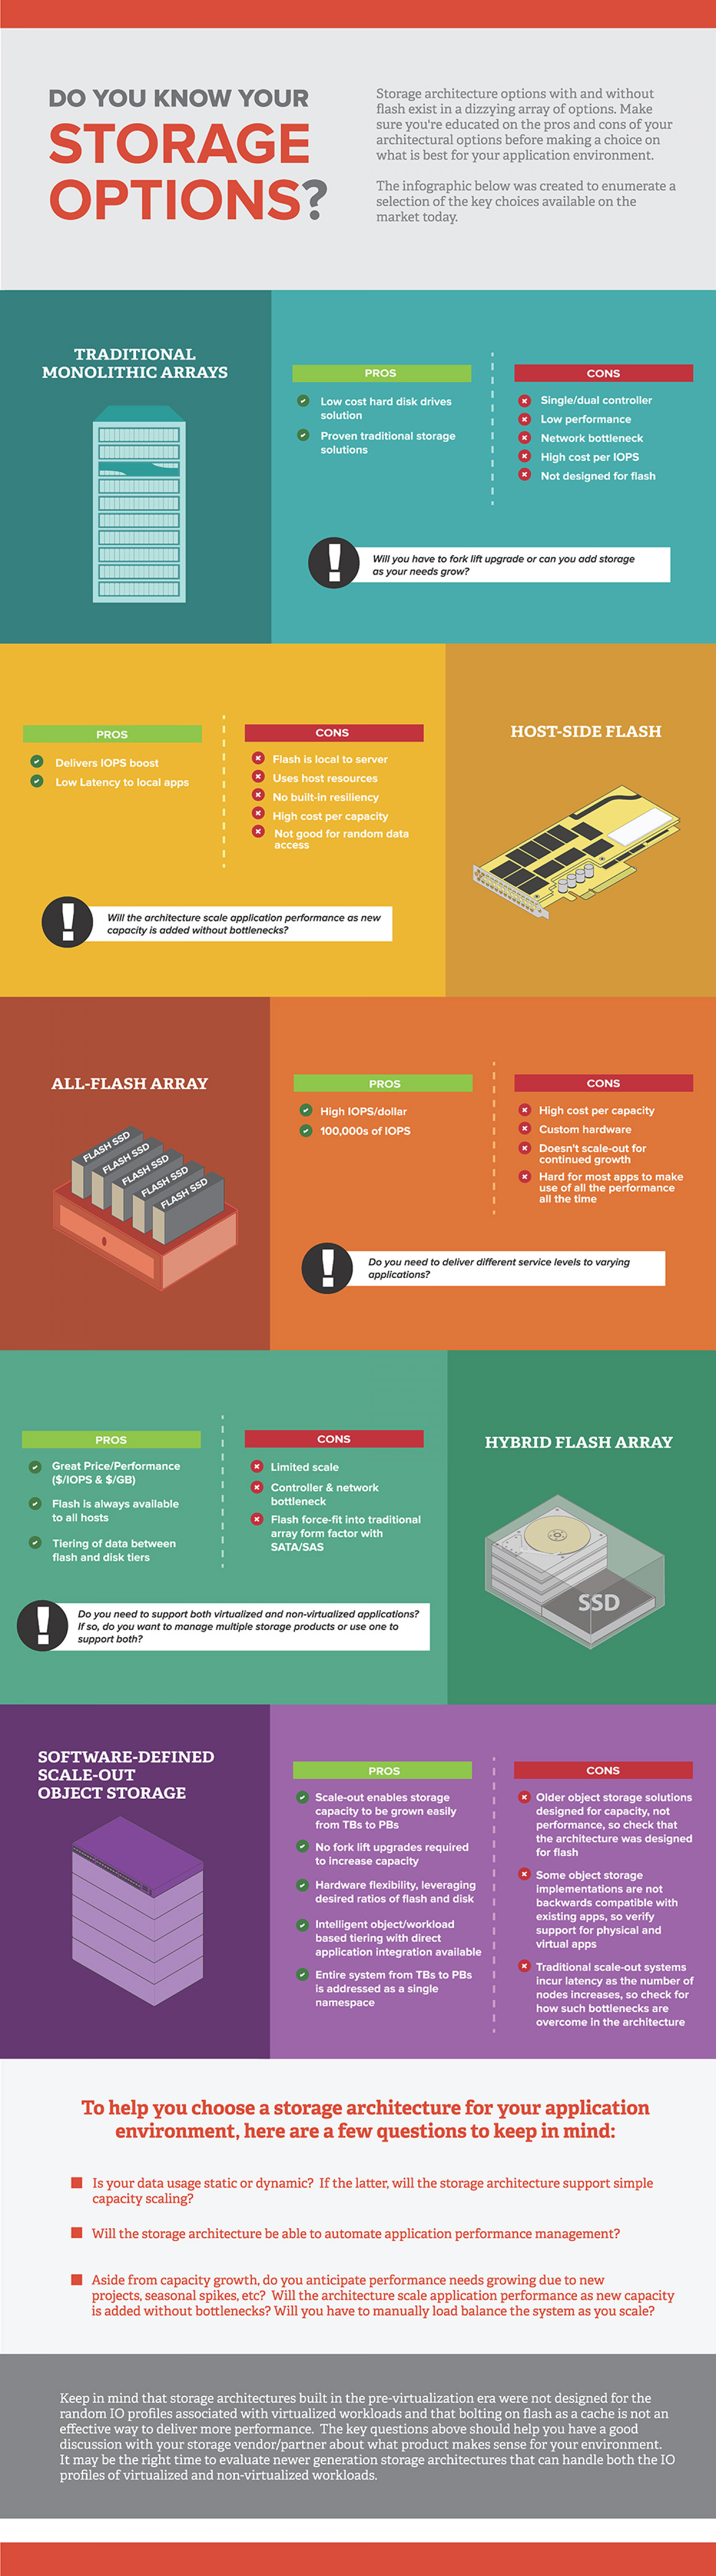 Do you know your Storage Options Infographic